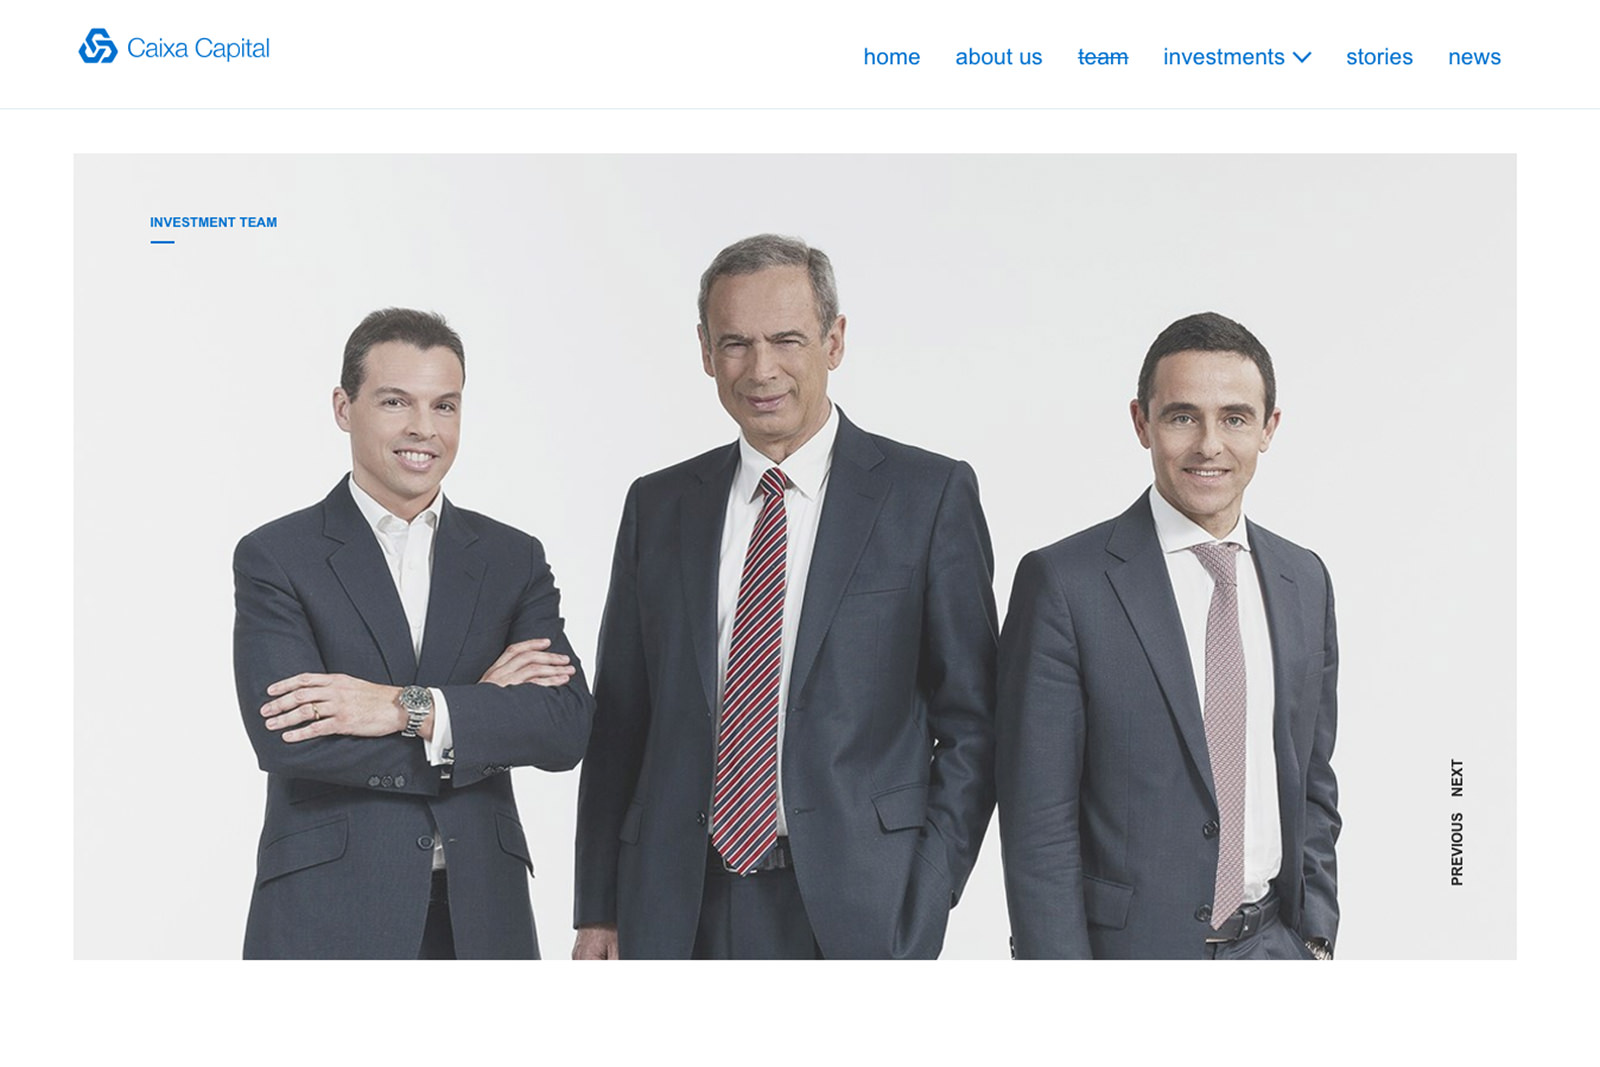 corporate_photography_caixa_capital_01.jpg